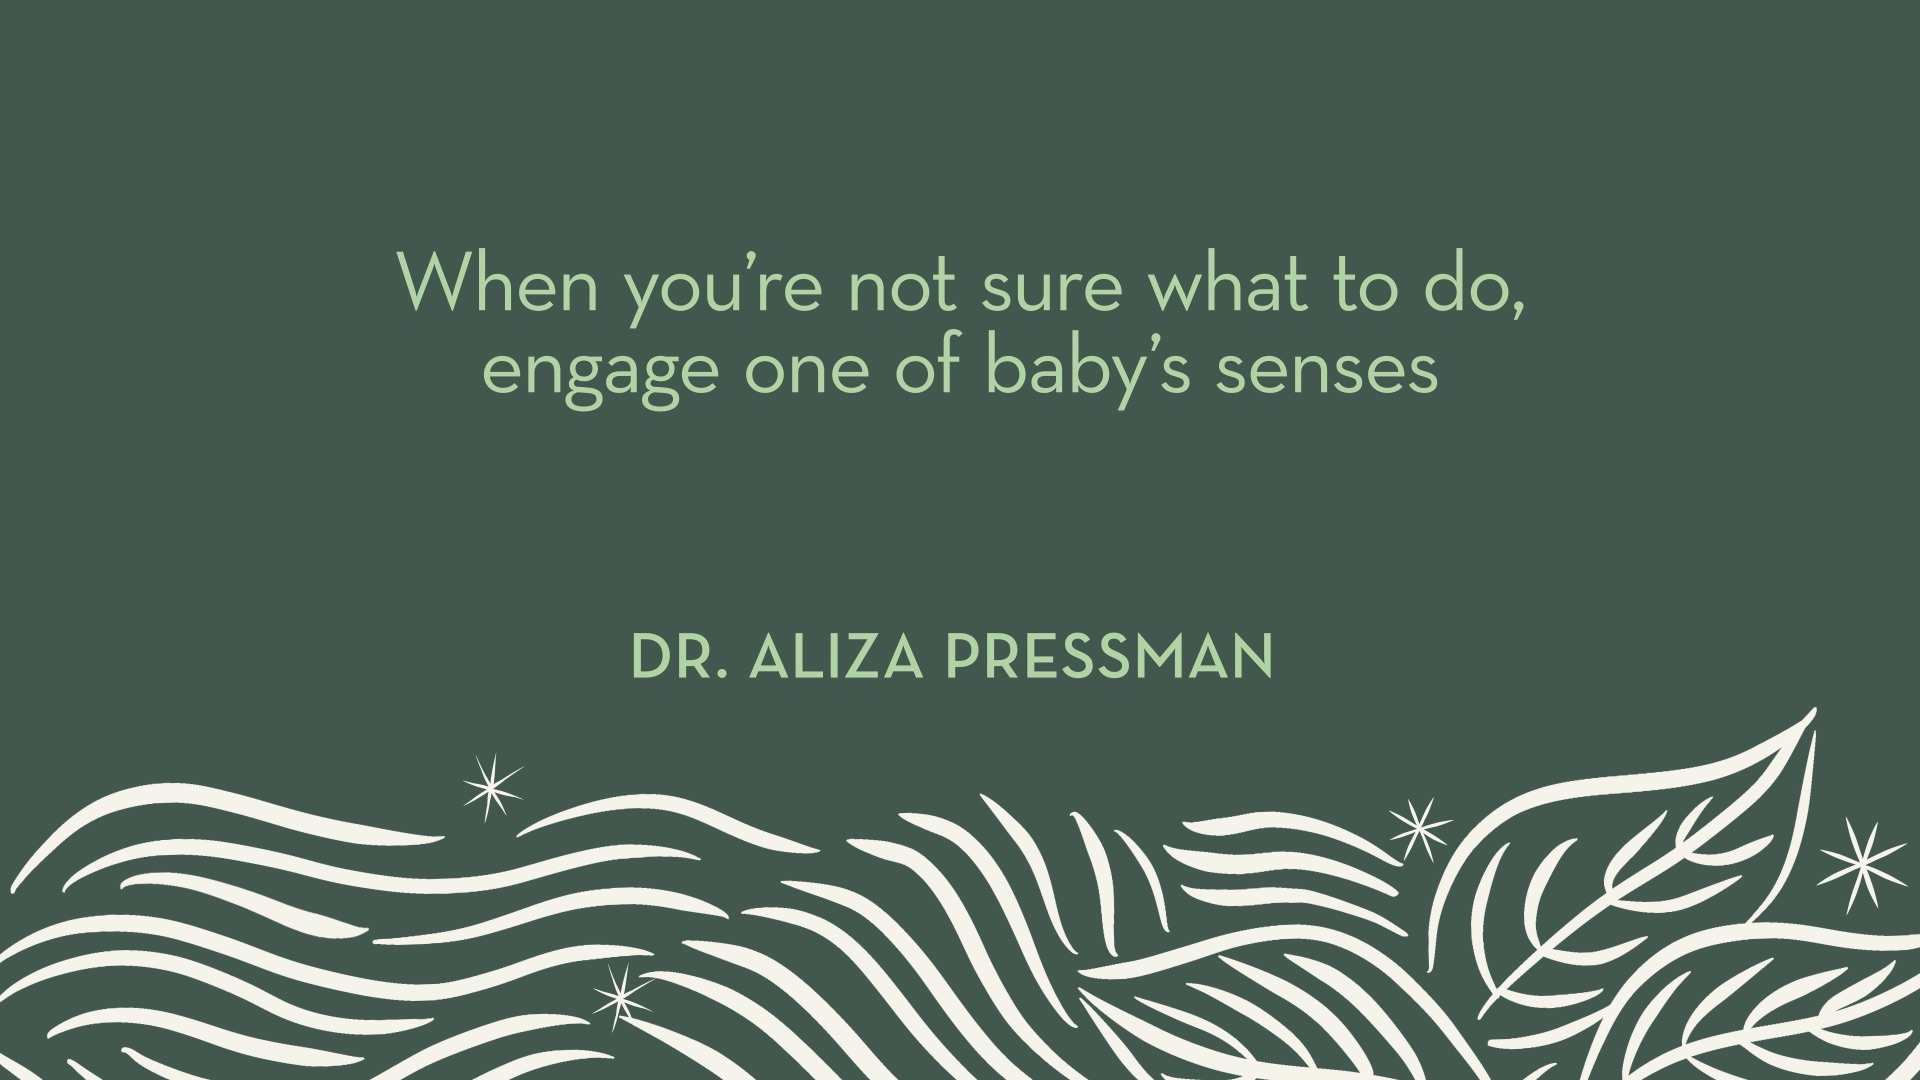 Dr. Pressman | When you're not sure what to do, engage one of baby's senses